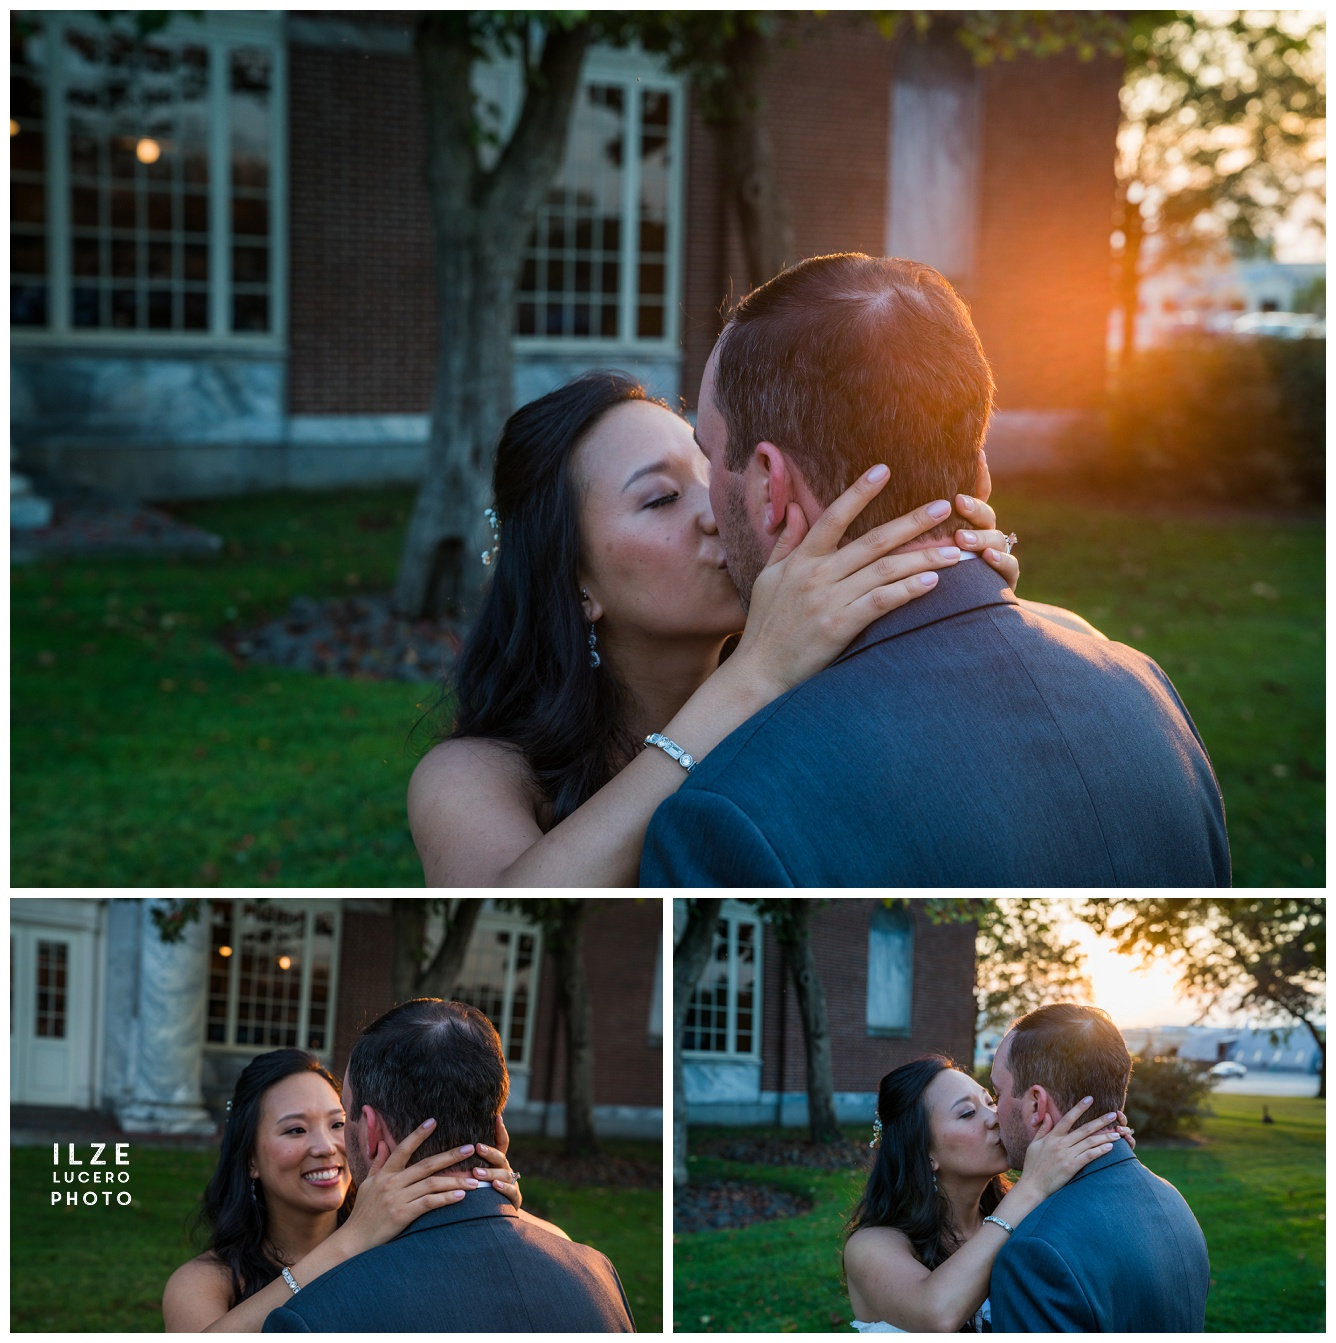 Sunset wedding photo inspiration Detroit